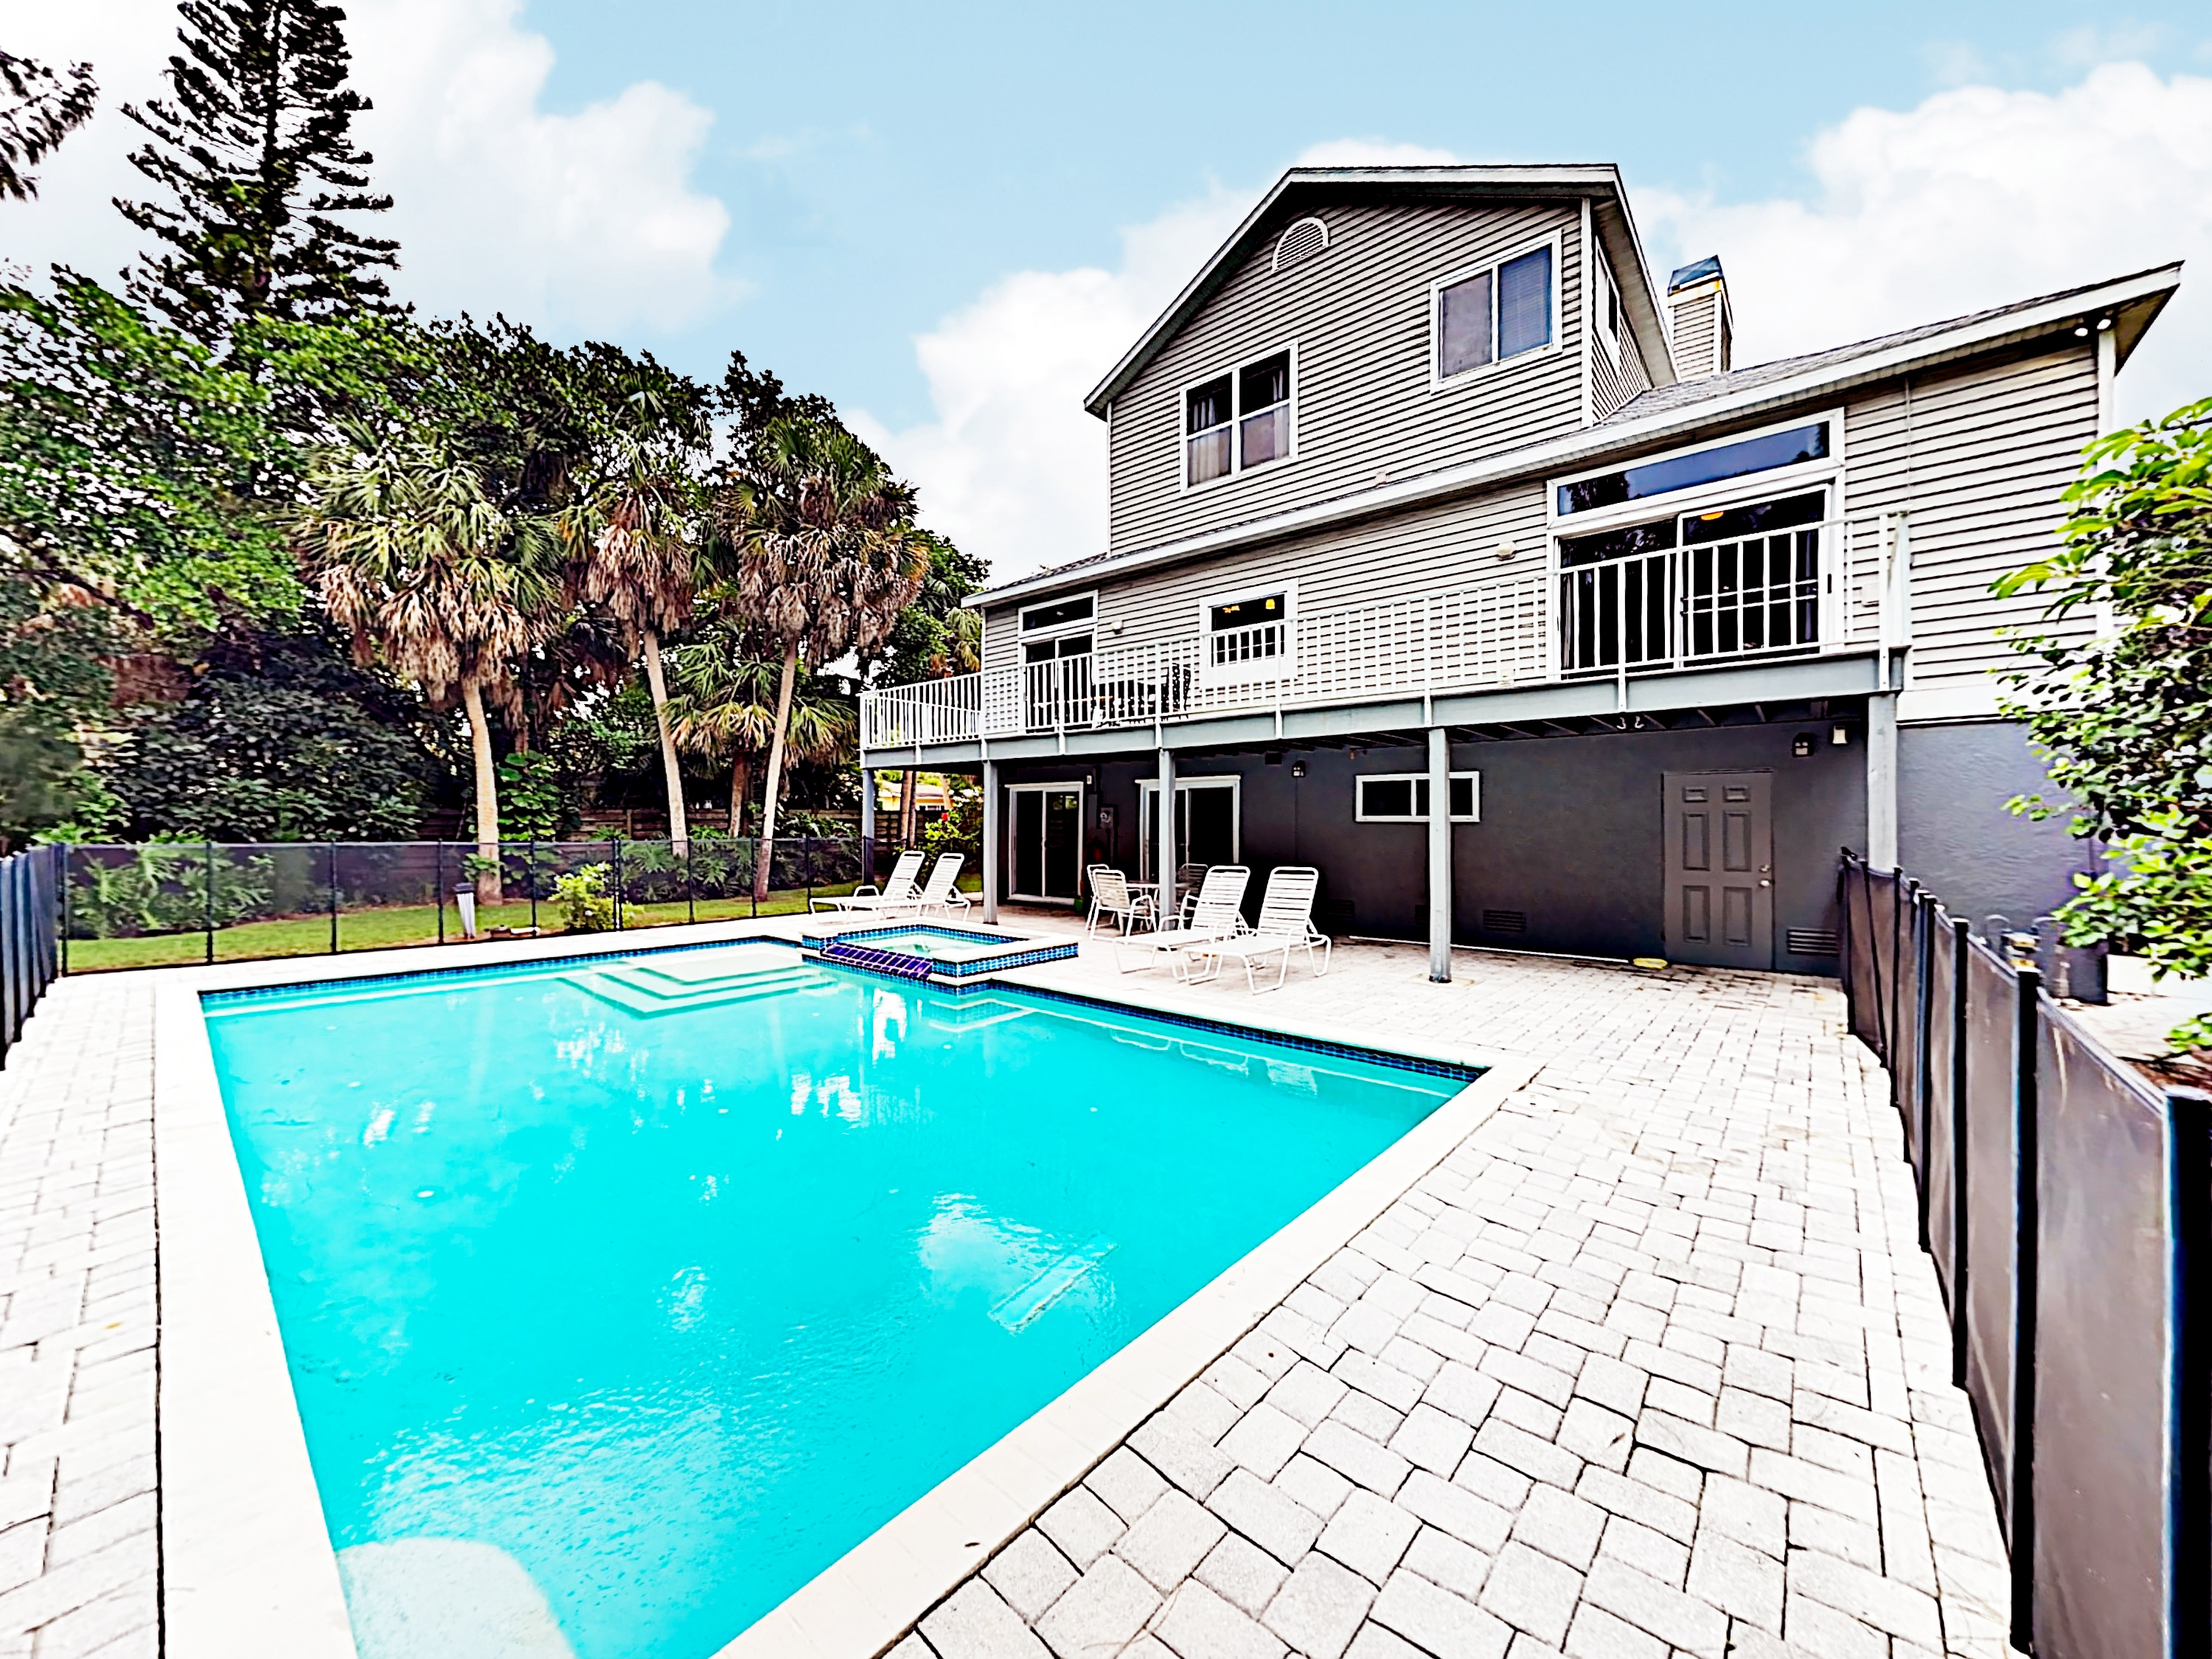 Welcome to Siesta Key! This home is professionally managed by TurnKey Vacation Rentals.